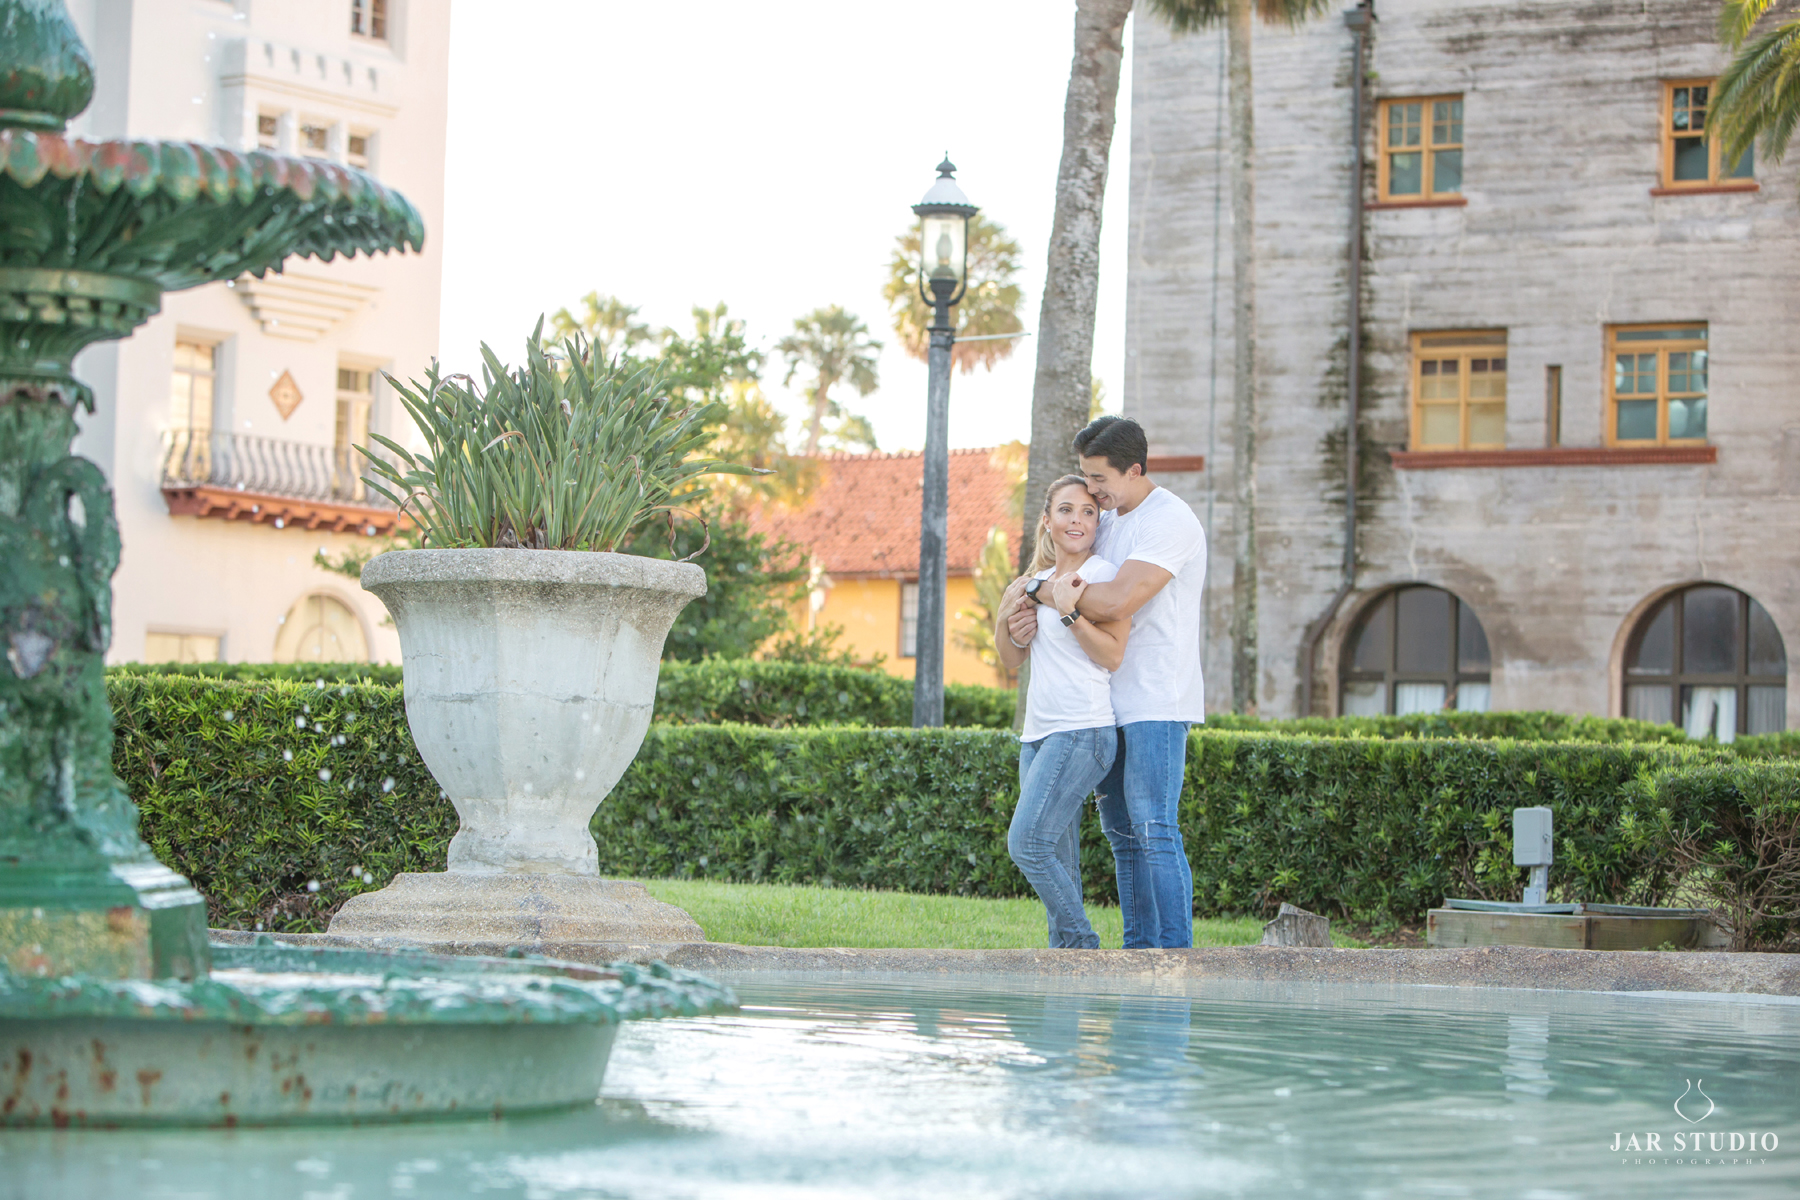 JARSTUDIO-engagement-photographer-orlando-fl-1818 (15).JPG